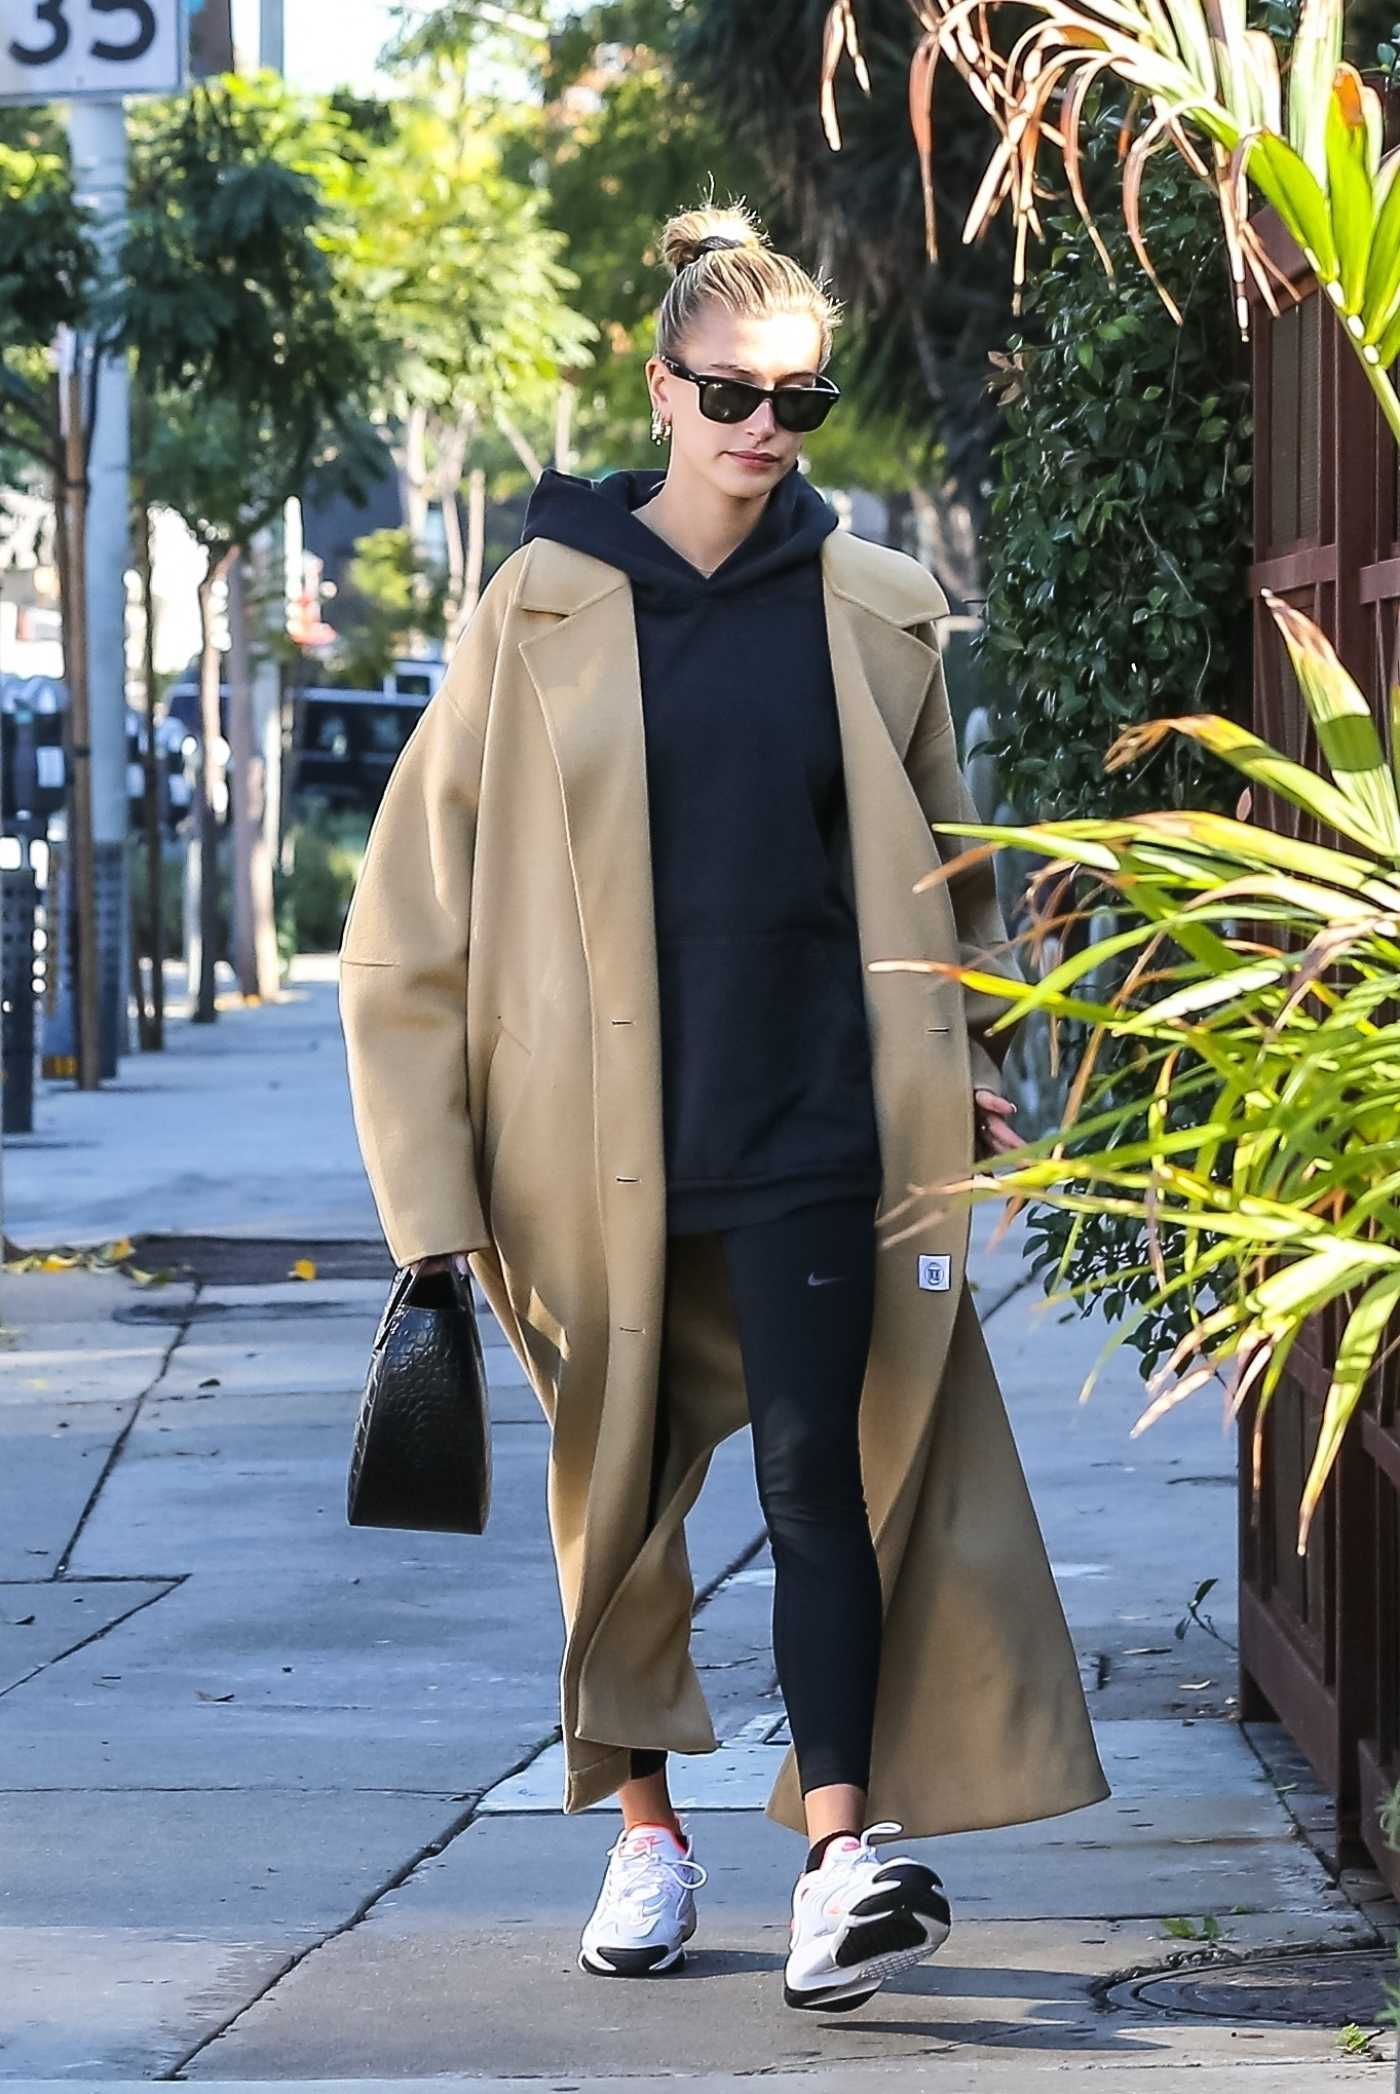 Hailey Baldwin in a Beige Coat Was Seen Out in Beverly Hills 12/09/2019